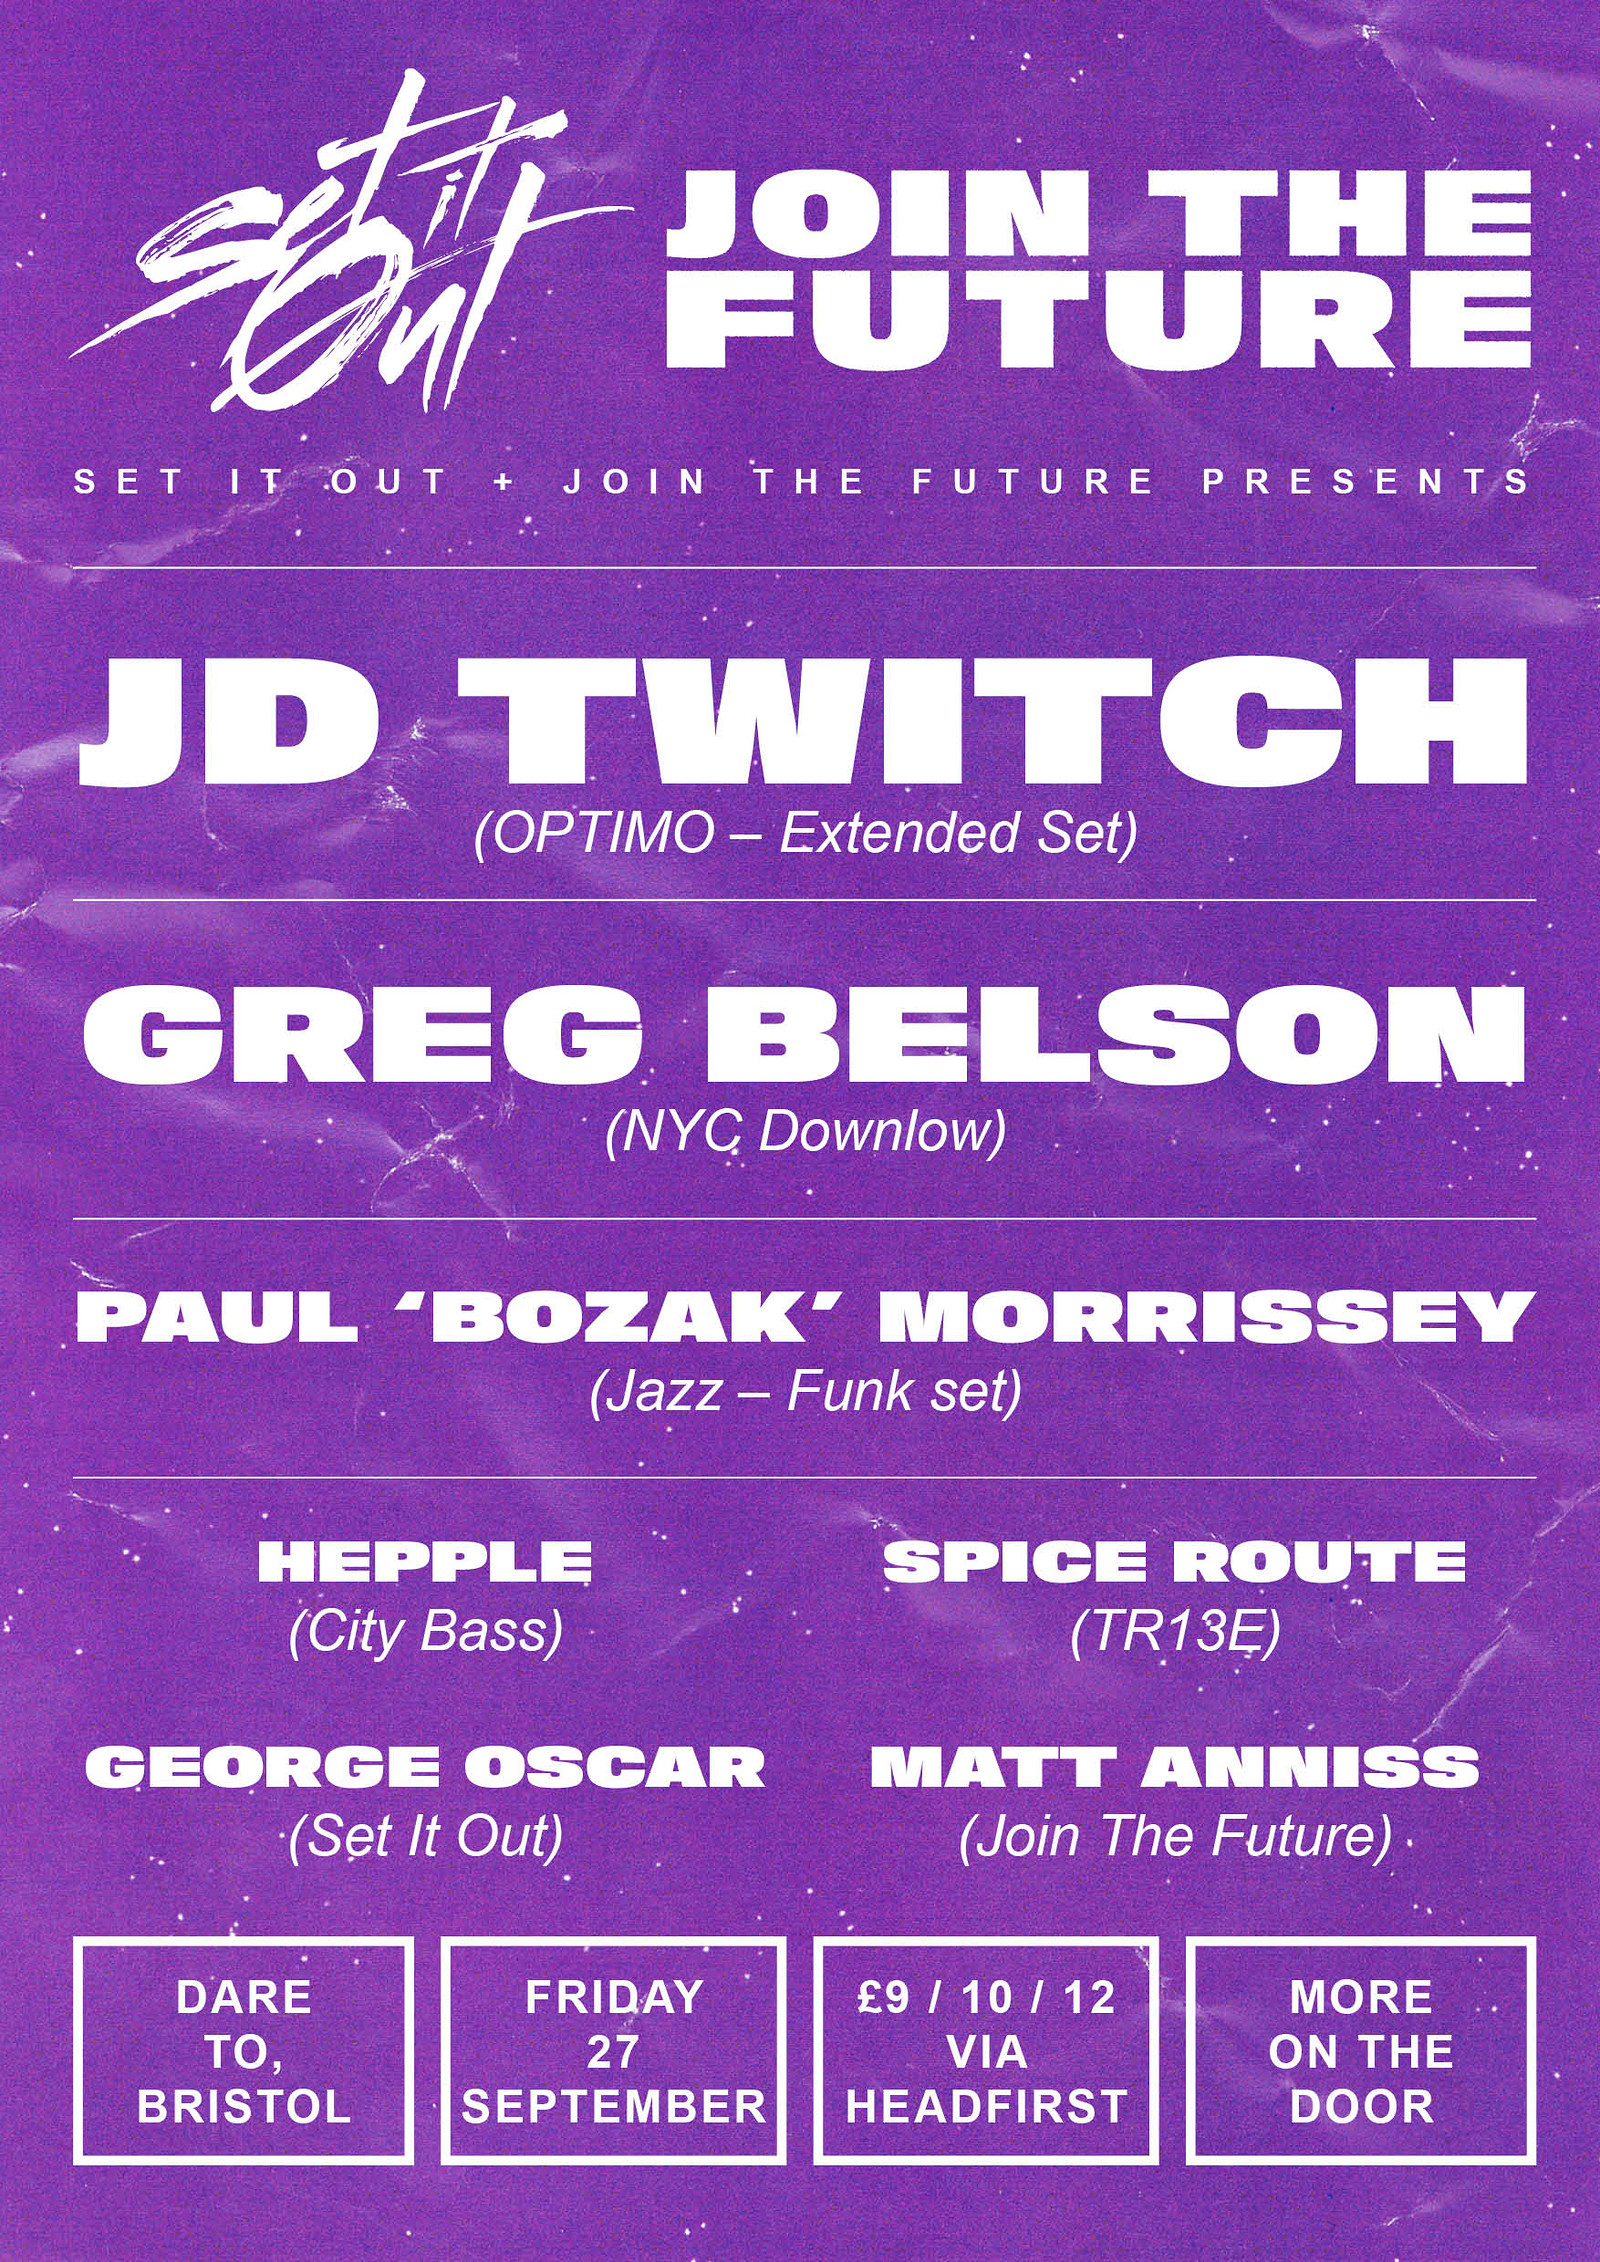 Set It Out presents Join The Future at Dare to Club